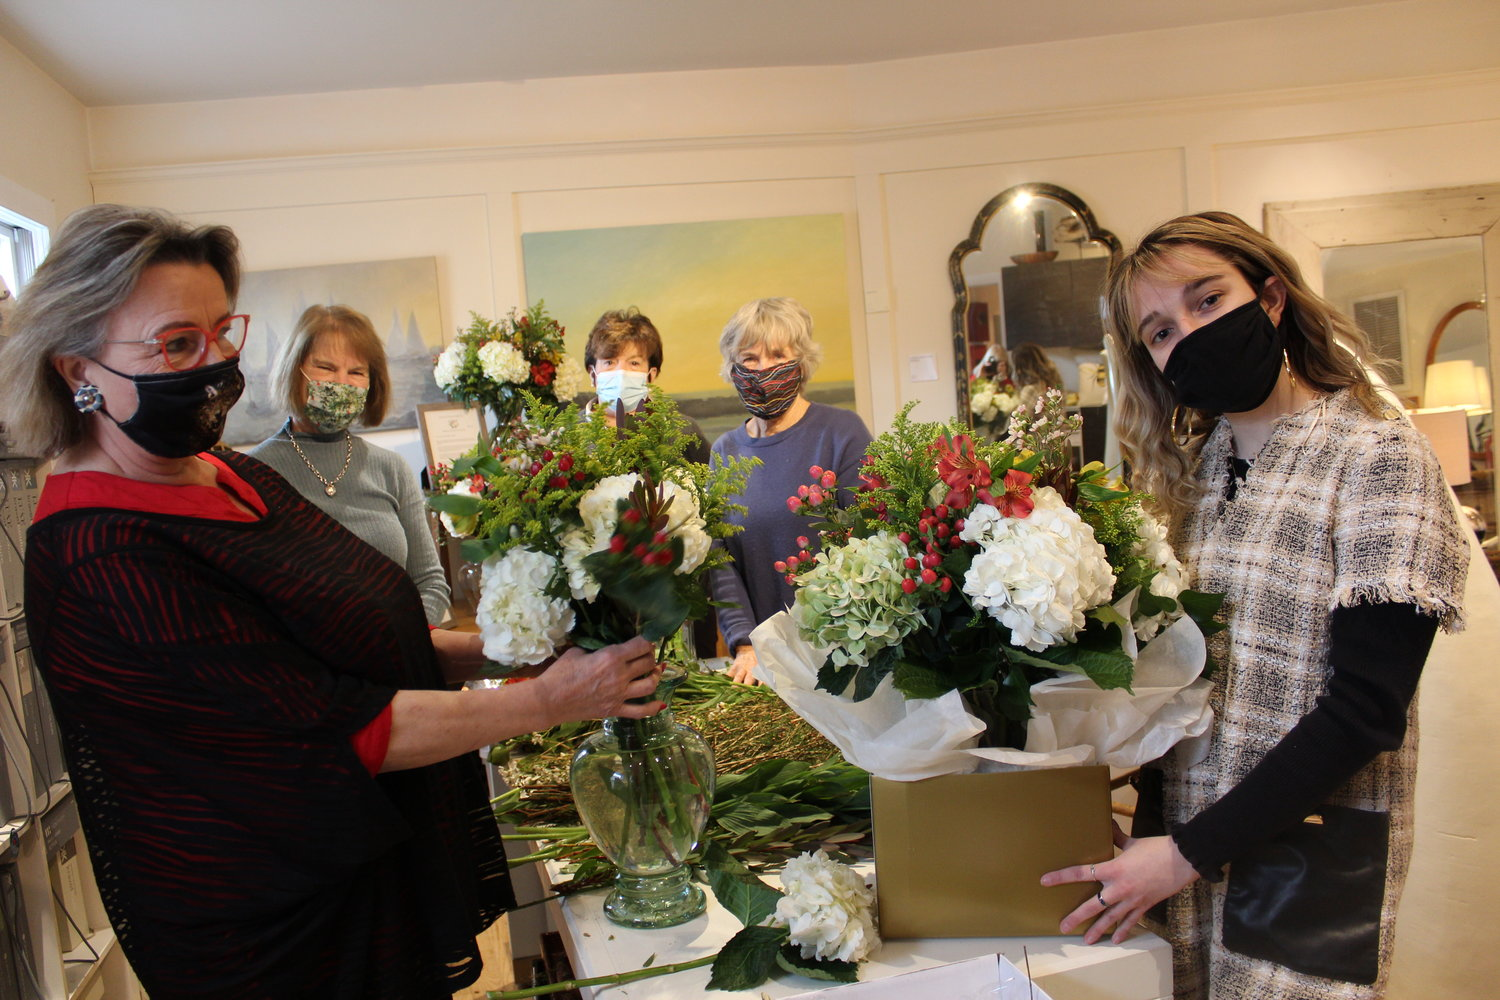 The South Country Education Foundation Inc. sponsored bouquets for teachers in seven local schools this week. Left to right: SCEF board member Pamela Lerner, SCEF vice president Diane Zanazzi, SCEF president Robin Roe, Bellport Garden Club civic chair Jane Tierney and Pamela Lerner Home & Design staffer Sam Mayo. Lerner and Tierney did the arrangements.